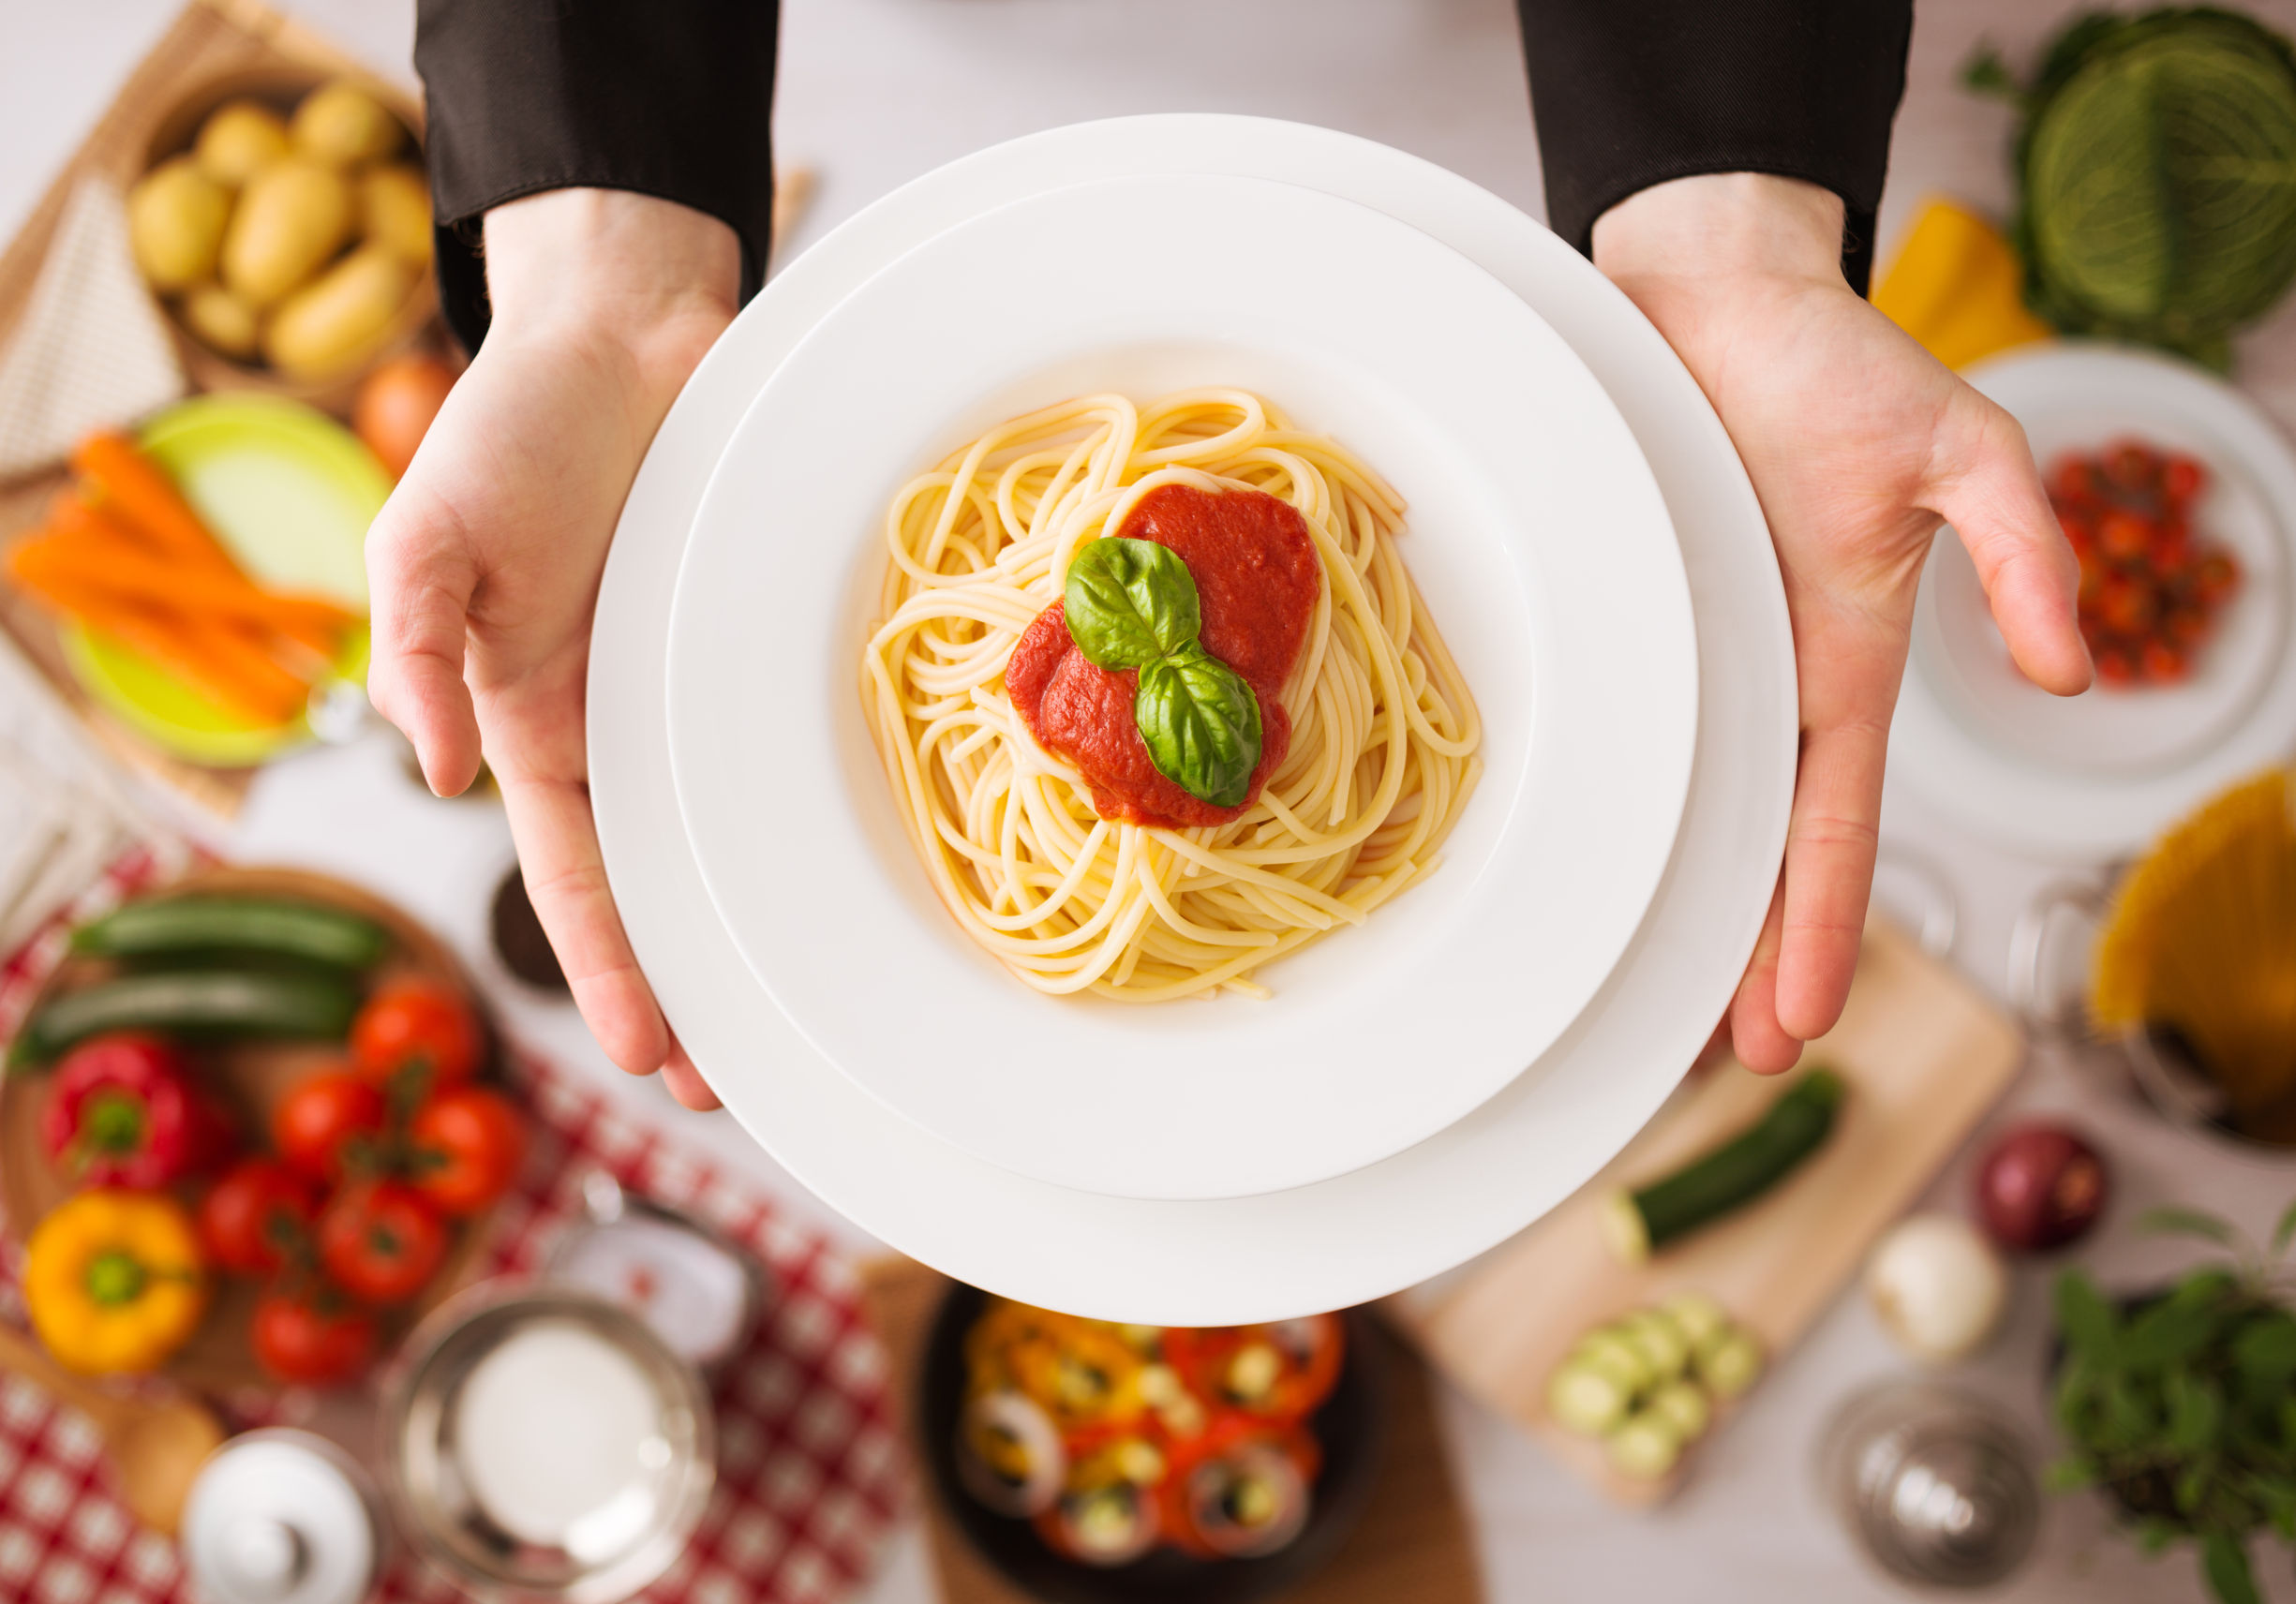 39375627 - professional chef's hands cooking pasta on a wooden worktop with vegetables, food ingredients and utensils, top view